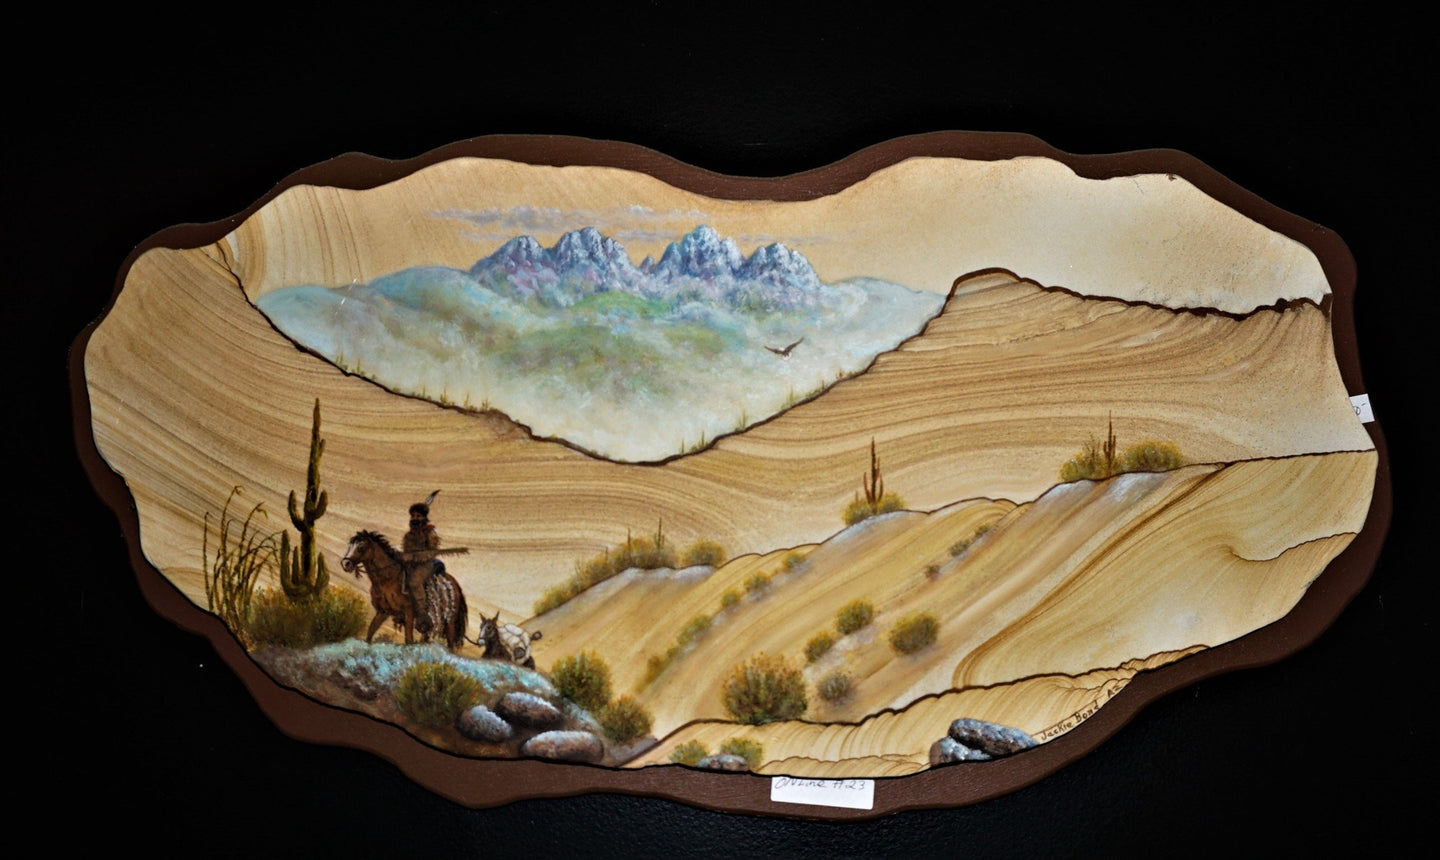 Hand Painted Southwest Scene On Sandstone